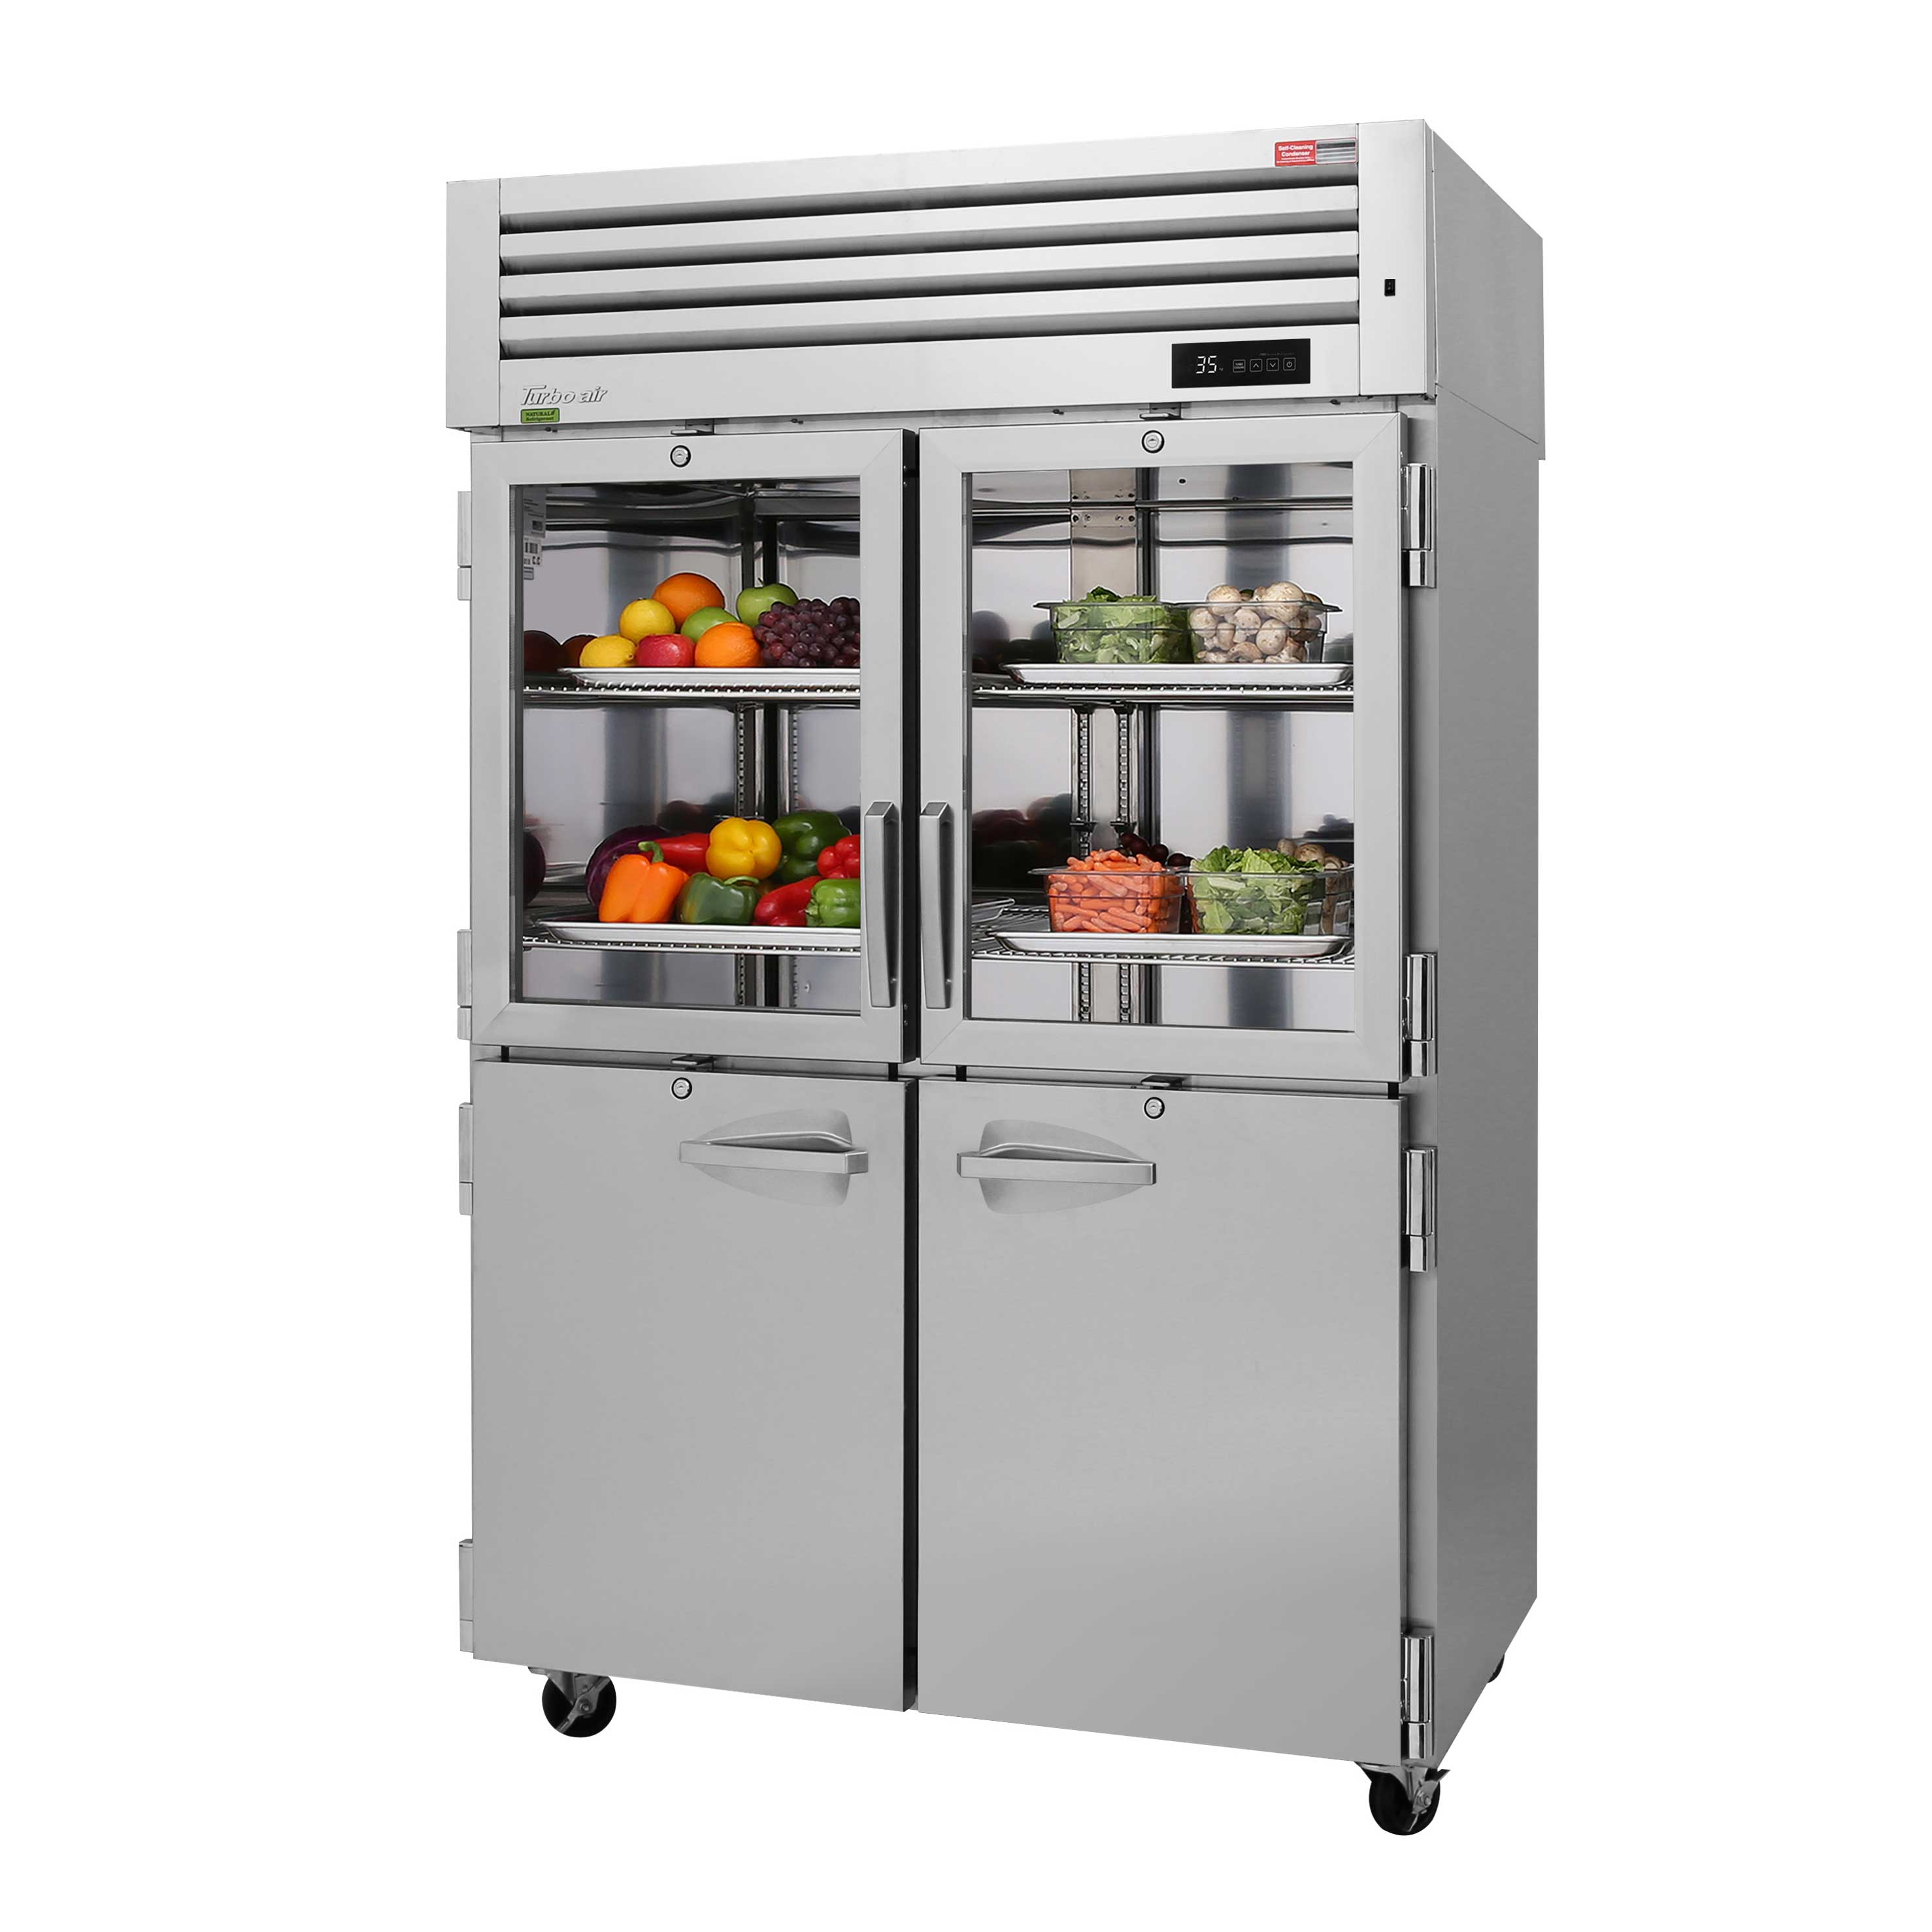 Turbo Air PRO-50R-GSH-N refrigerator, reach-in